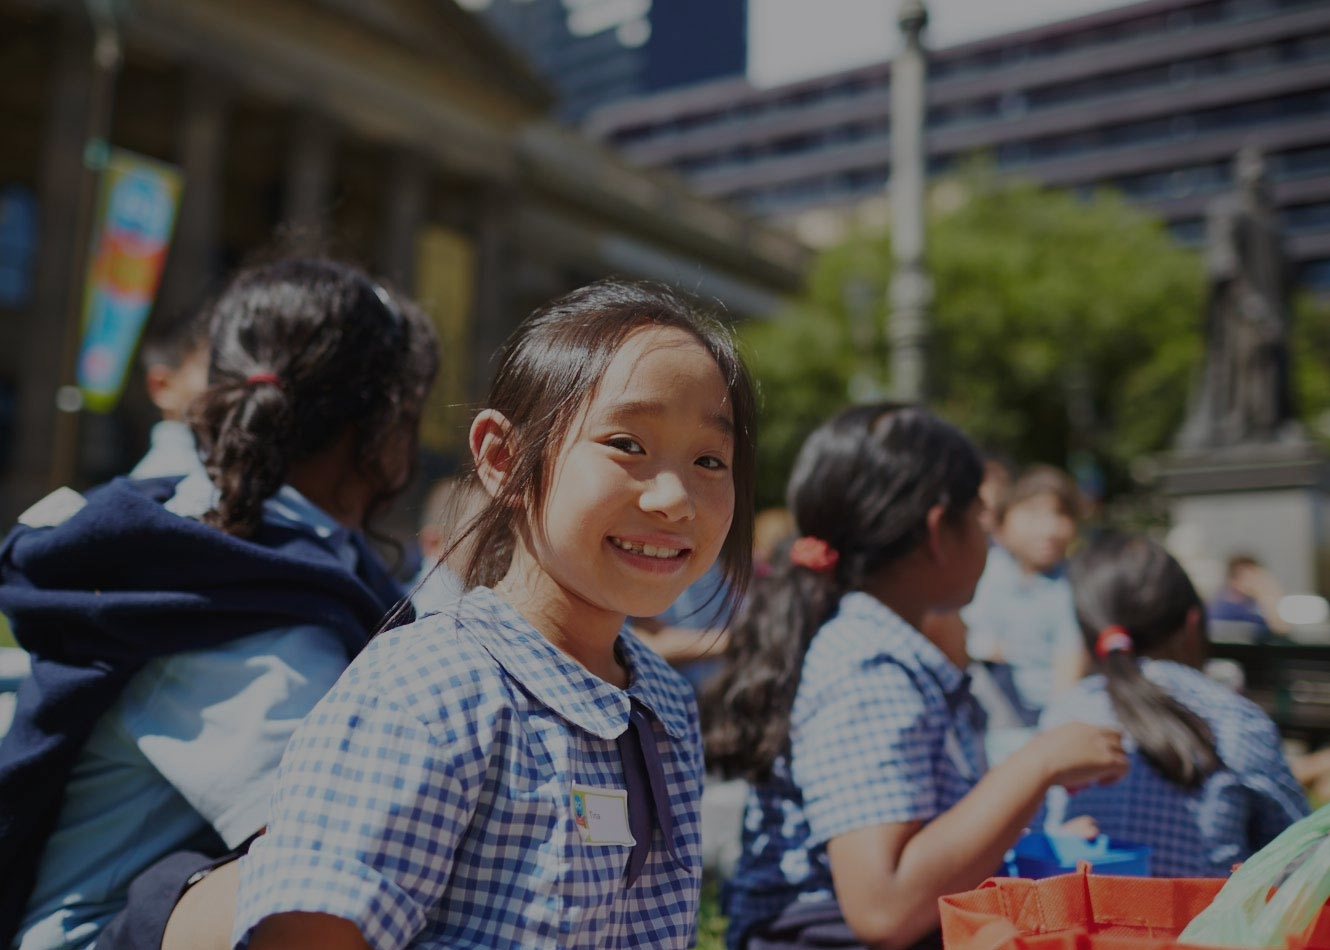 ALL - State Library of Victoria website